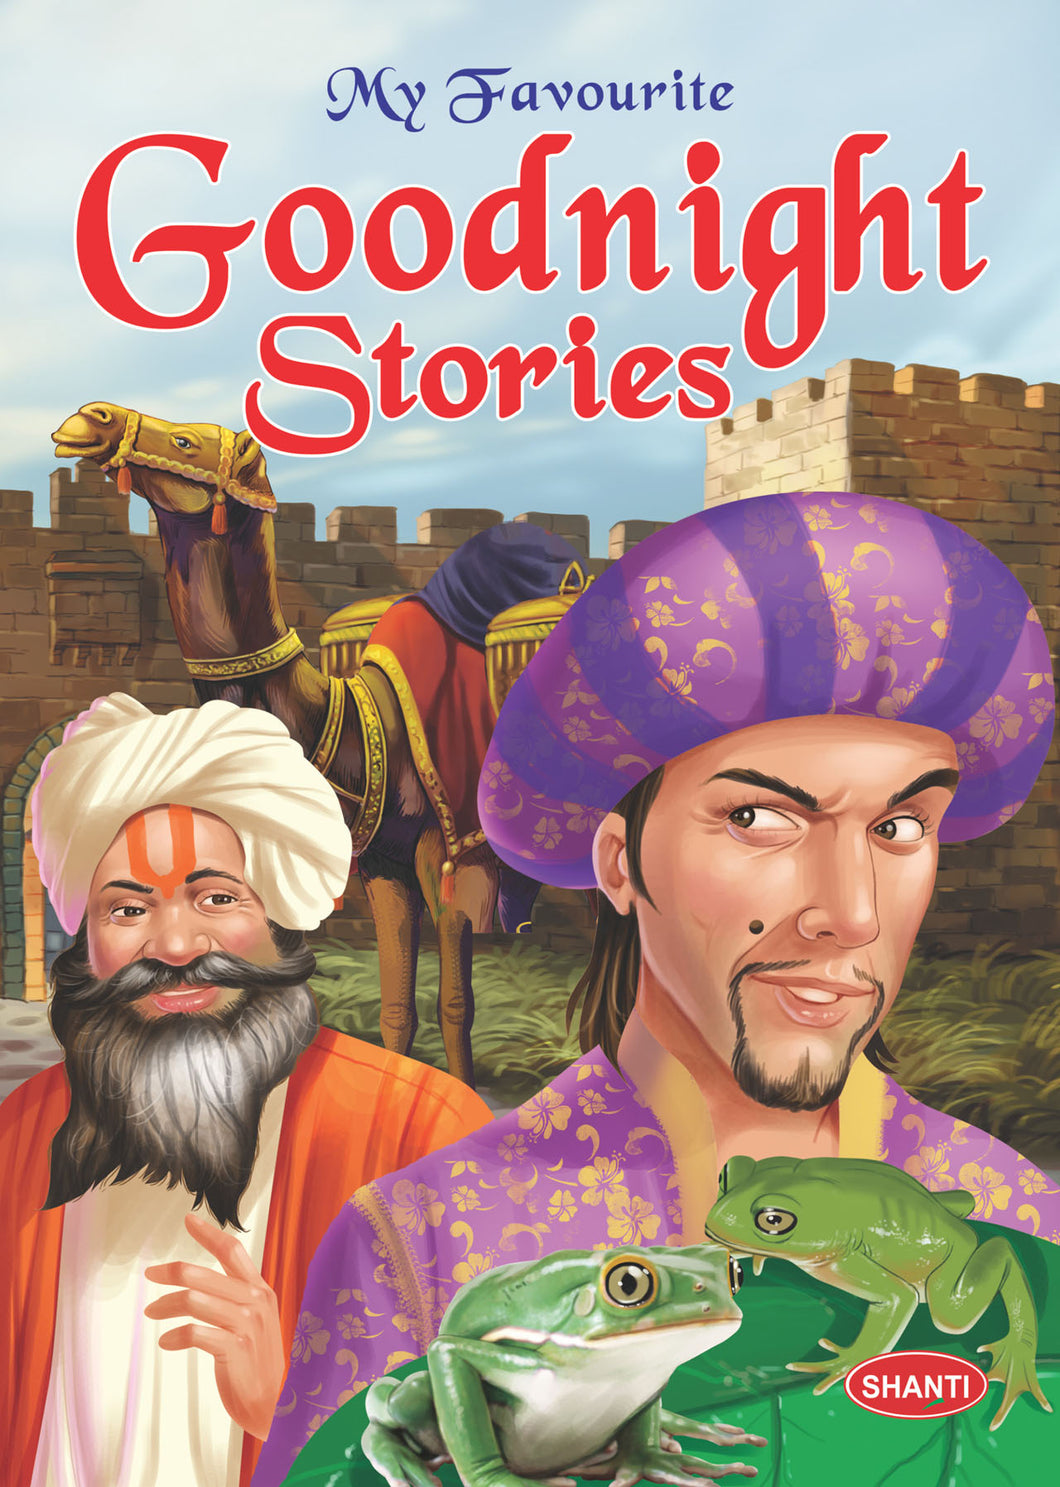 Story Book for Kids-My Favorite Goodnight Stories (English)-2